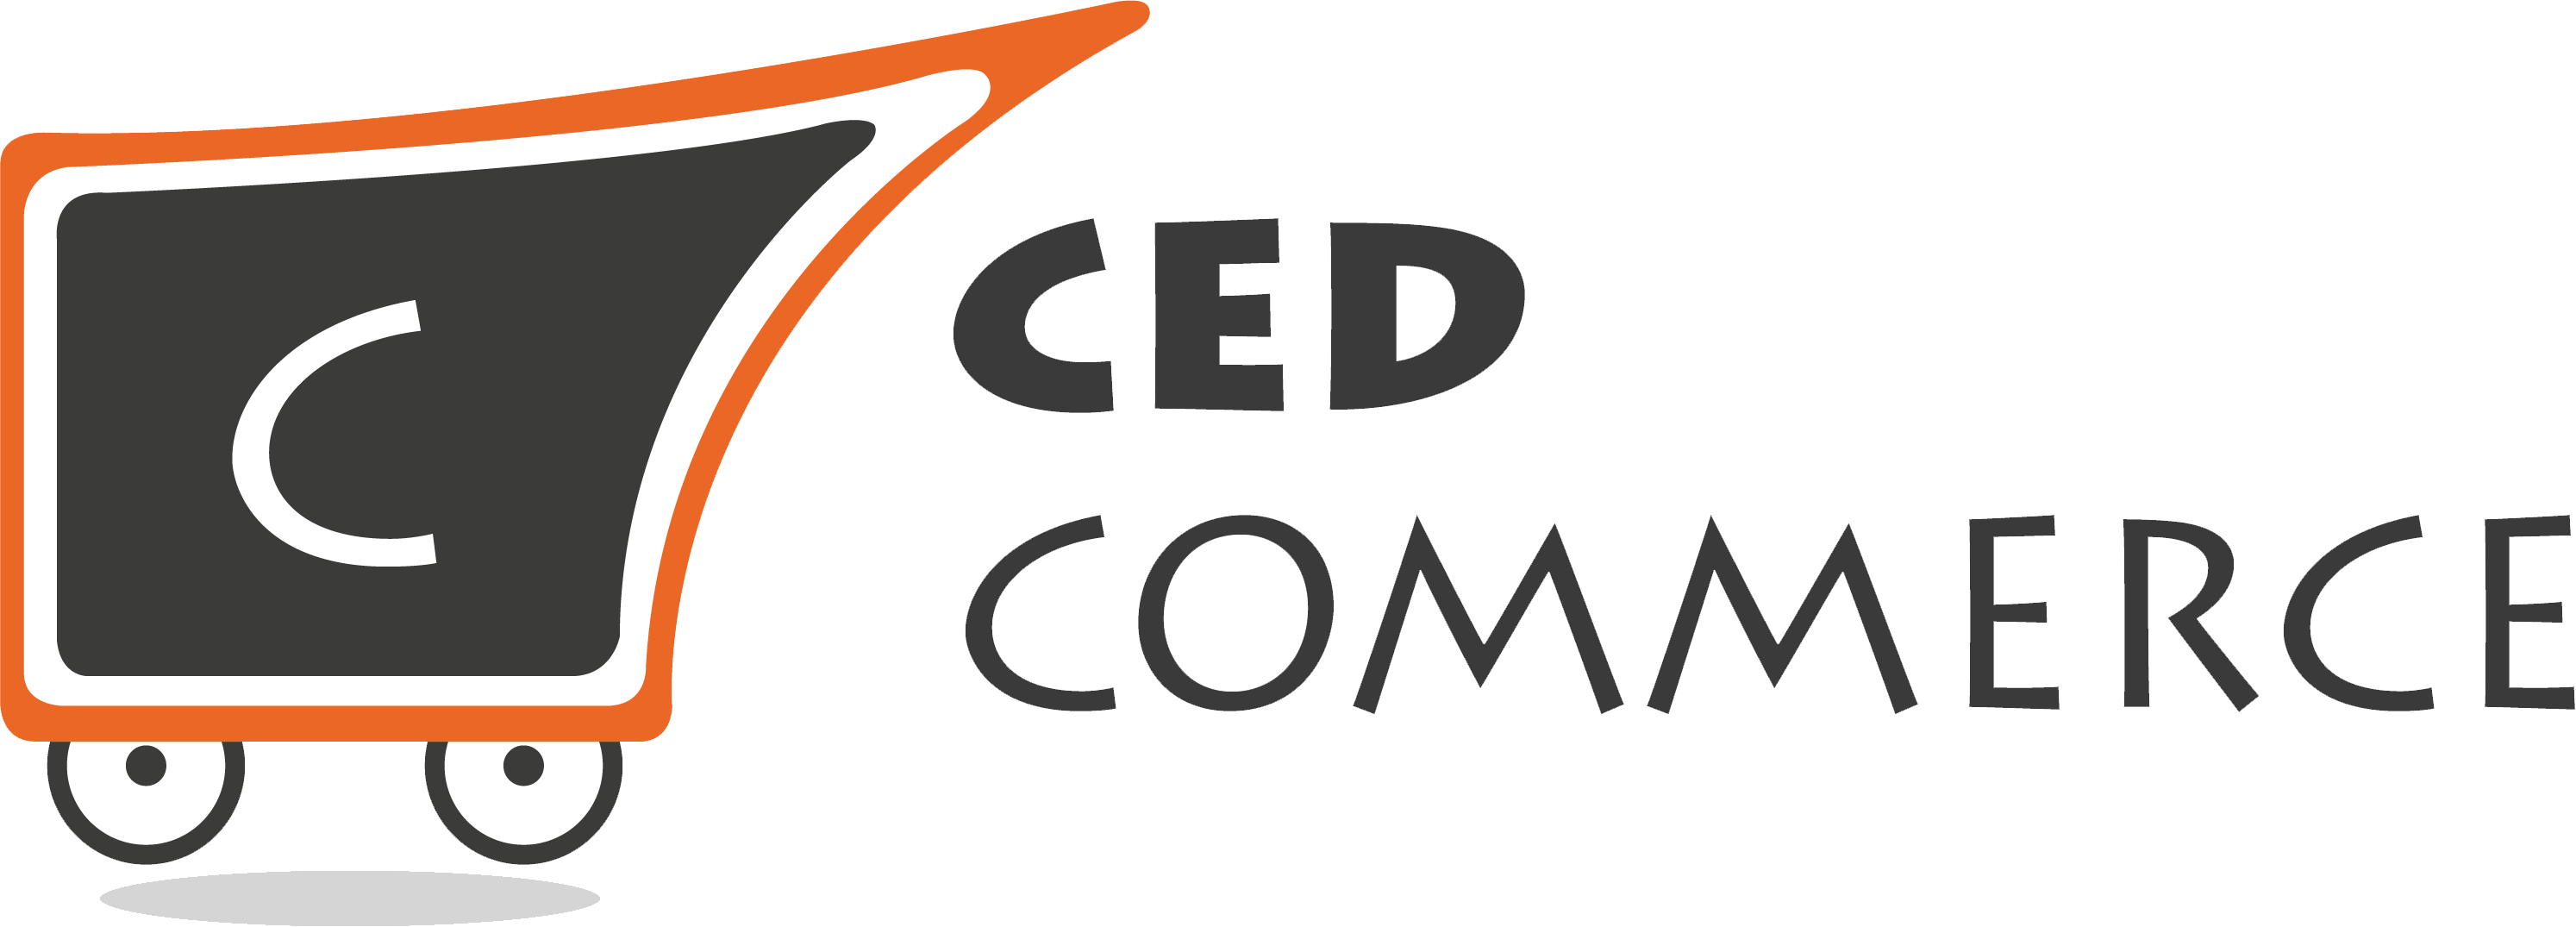 cedcommerce updated logo